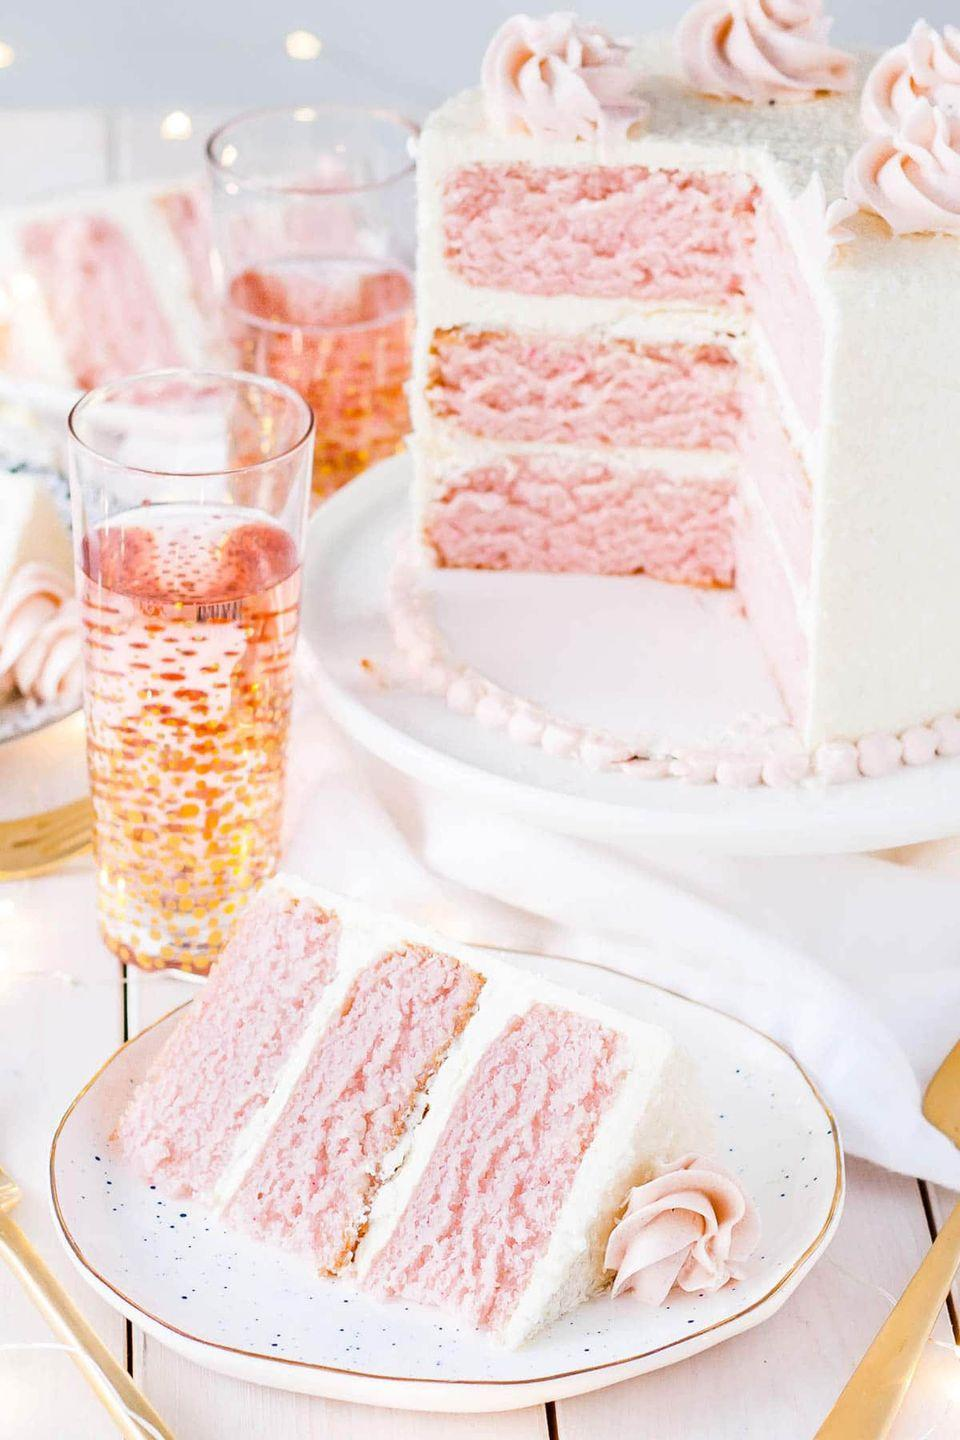 "<p>This Champagne-infused cake topped with vanilla buttercream frosting is best served with a glass of bubbly, of course!</p><p><strong>Get the recipe at <a href=""https://livforcake.com/pink-champagne-cake/"" rel=""nofollow noopener"" target=""_blank"" data-ylk=""slk:Liv for Cake"" class=""link rapid-noclick-resp"">Liv for Cake</a>.</strong></p>"